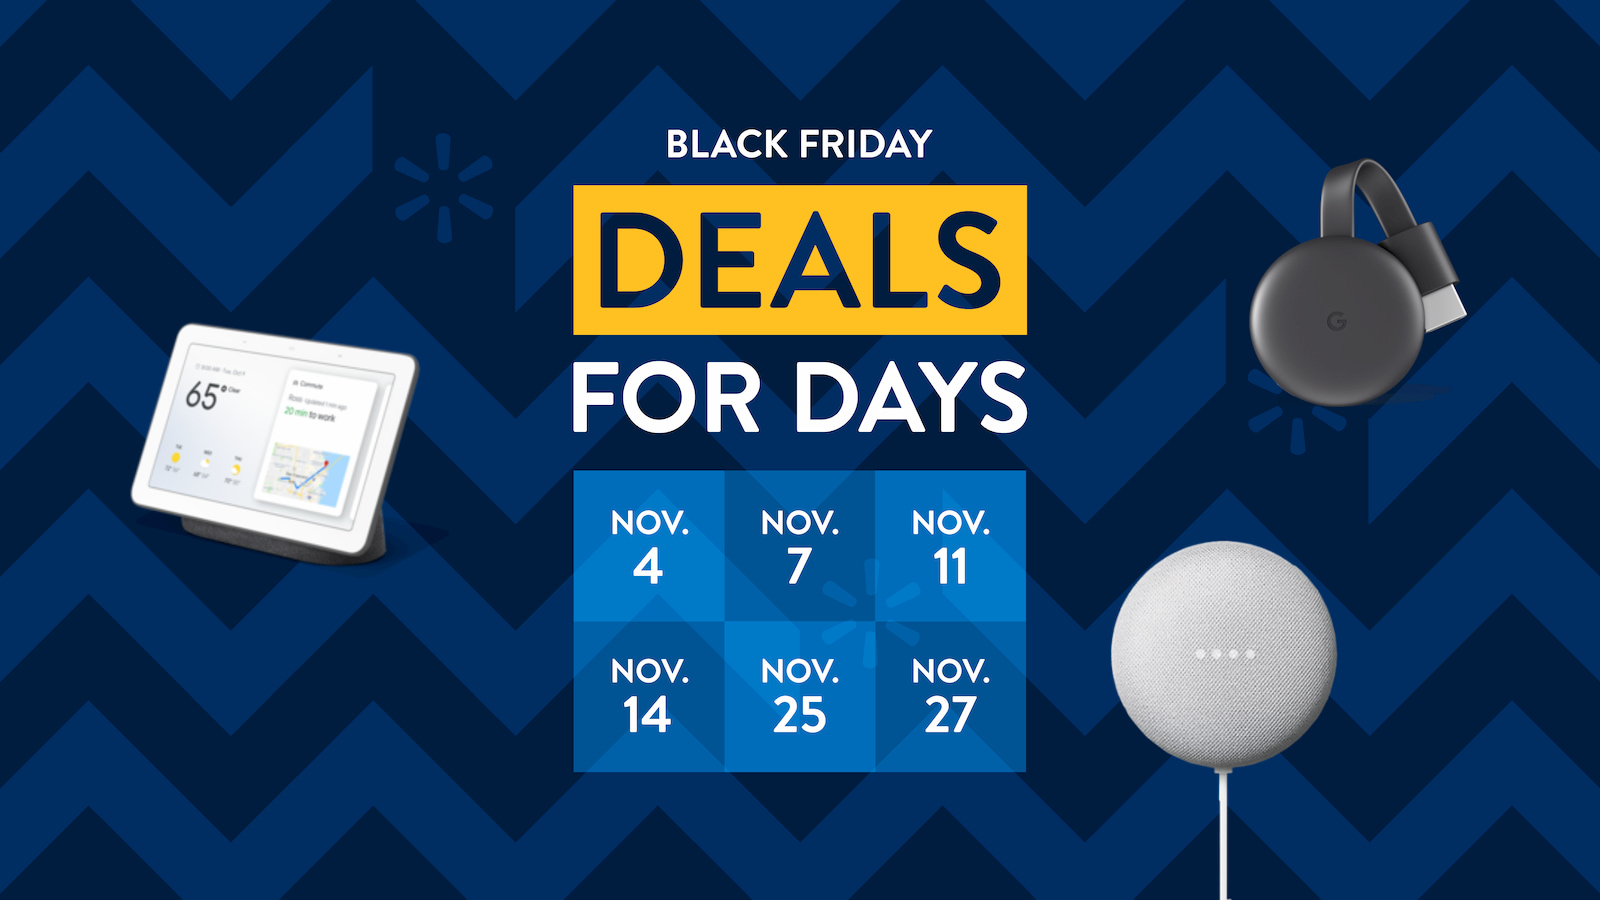 Walmart's Google-y Black Friday Deals go live tonight with bonus Vudu credits